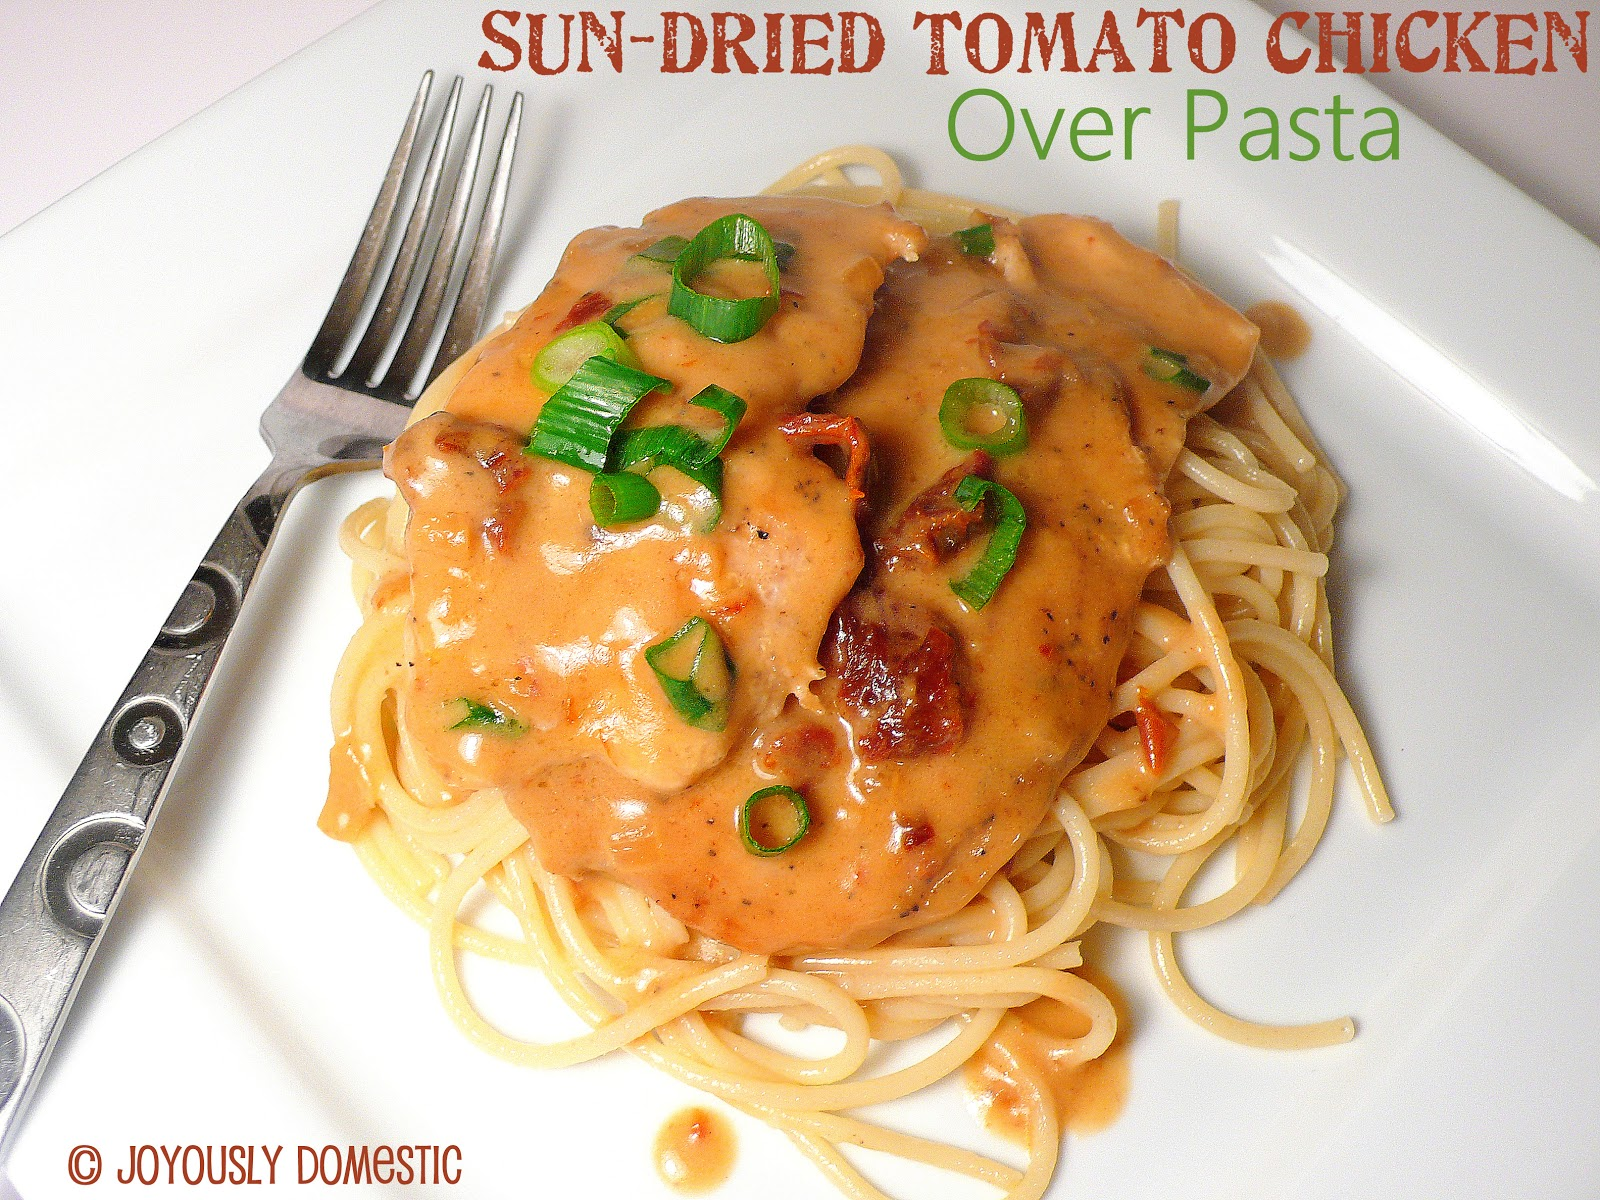 Joyously Domestic: Sun-dried Tomato Chicken Over Pasta